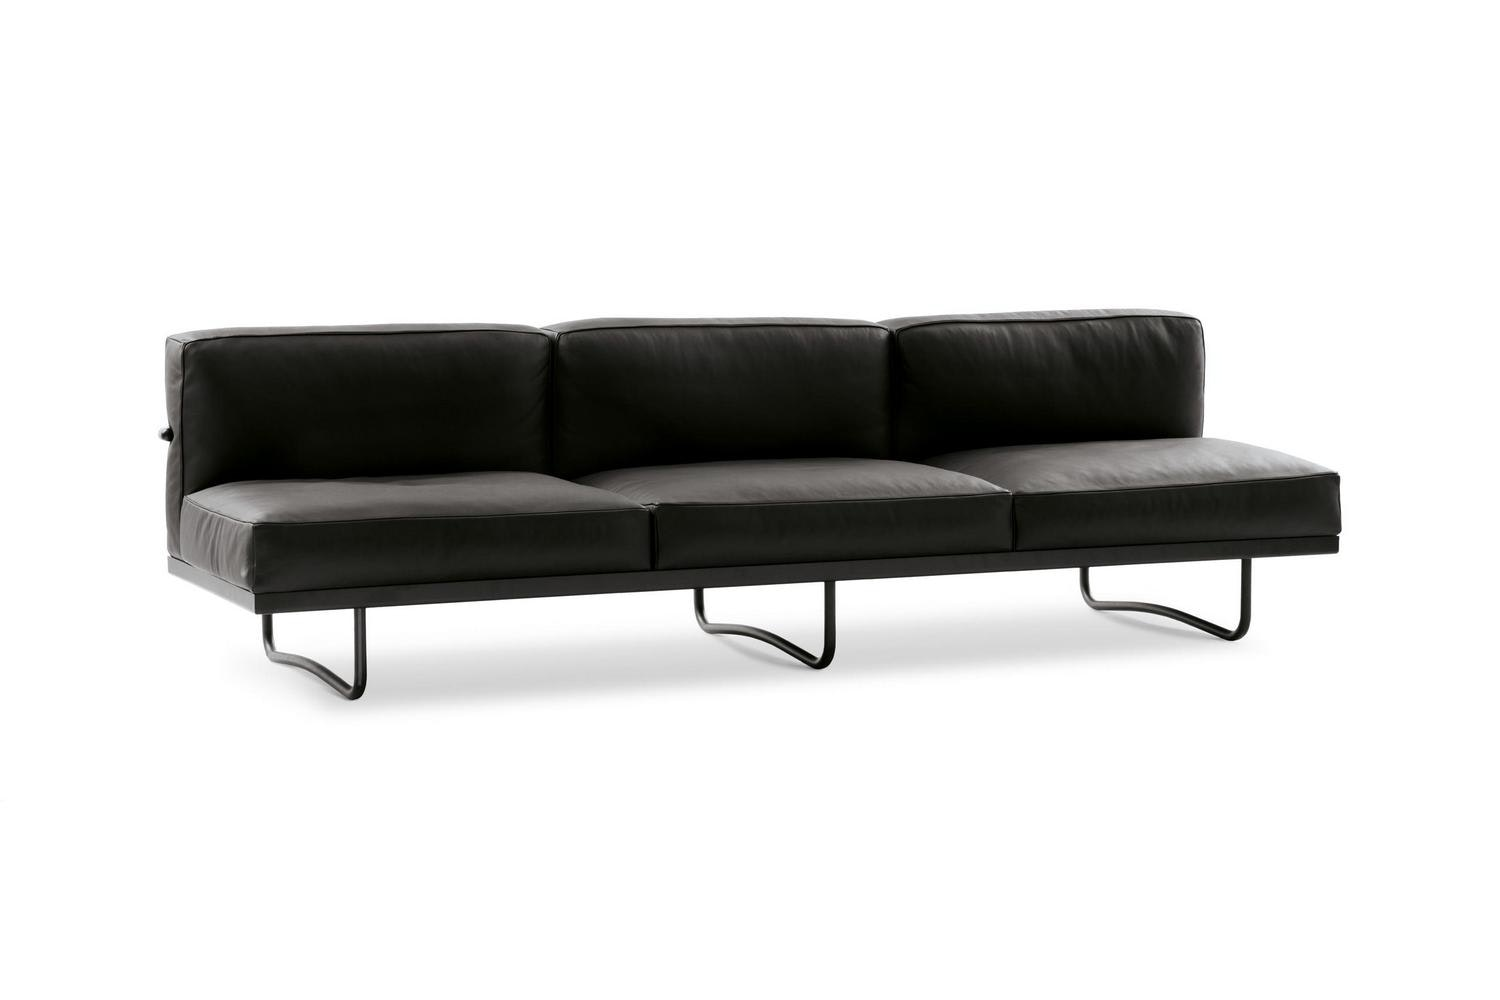 LC5 Sofa by Le Corbusier, Pierre Jeanneret, Charlotte Perriand for Cassina